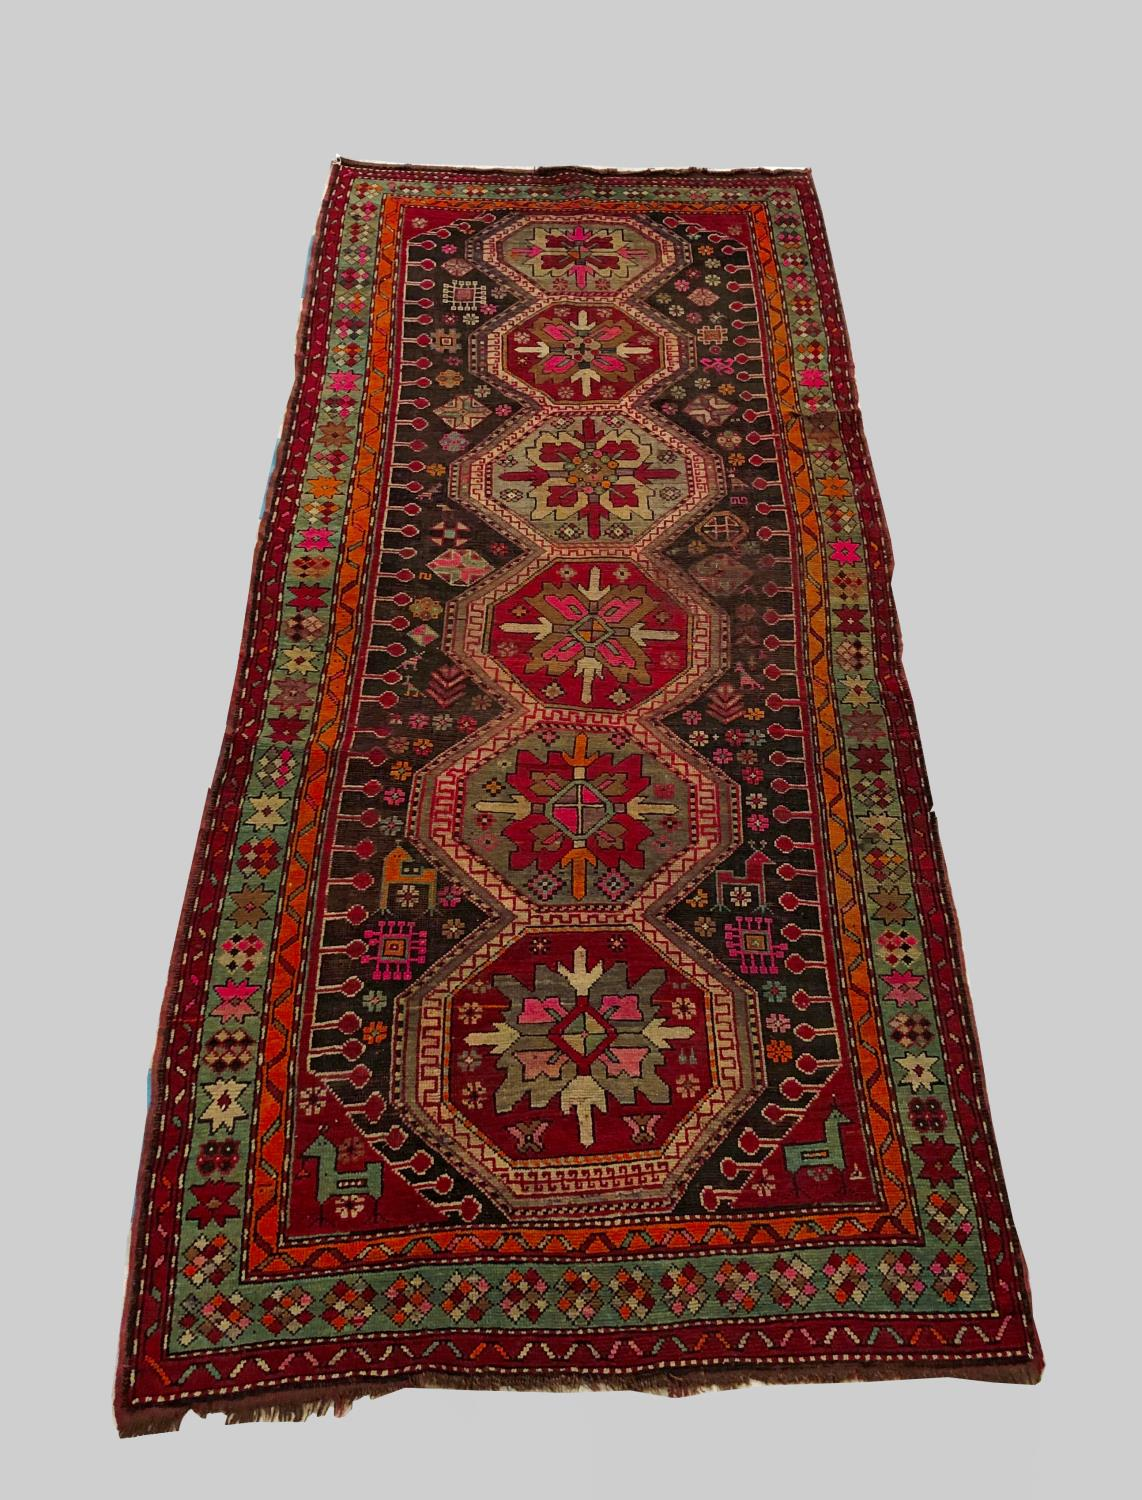 A KARABAGH RUG, South Caucasus, c.1910, the charcoal field with a column of linked octagons